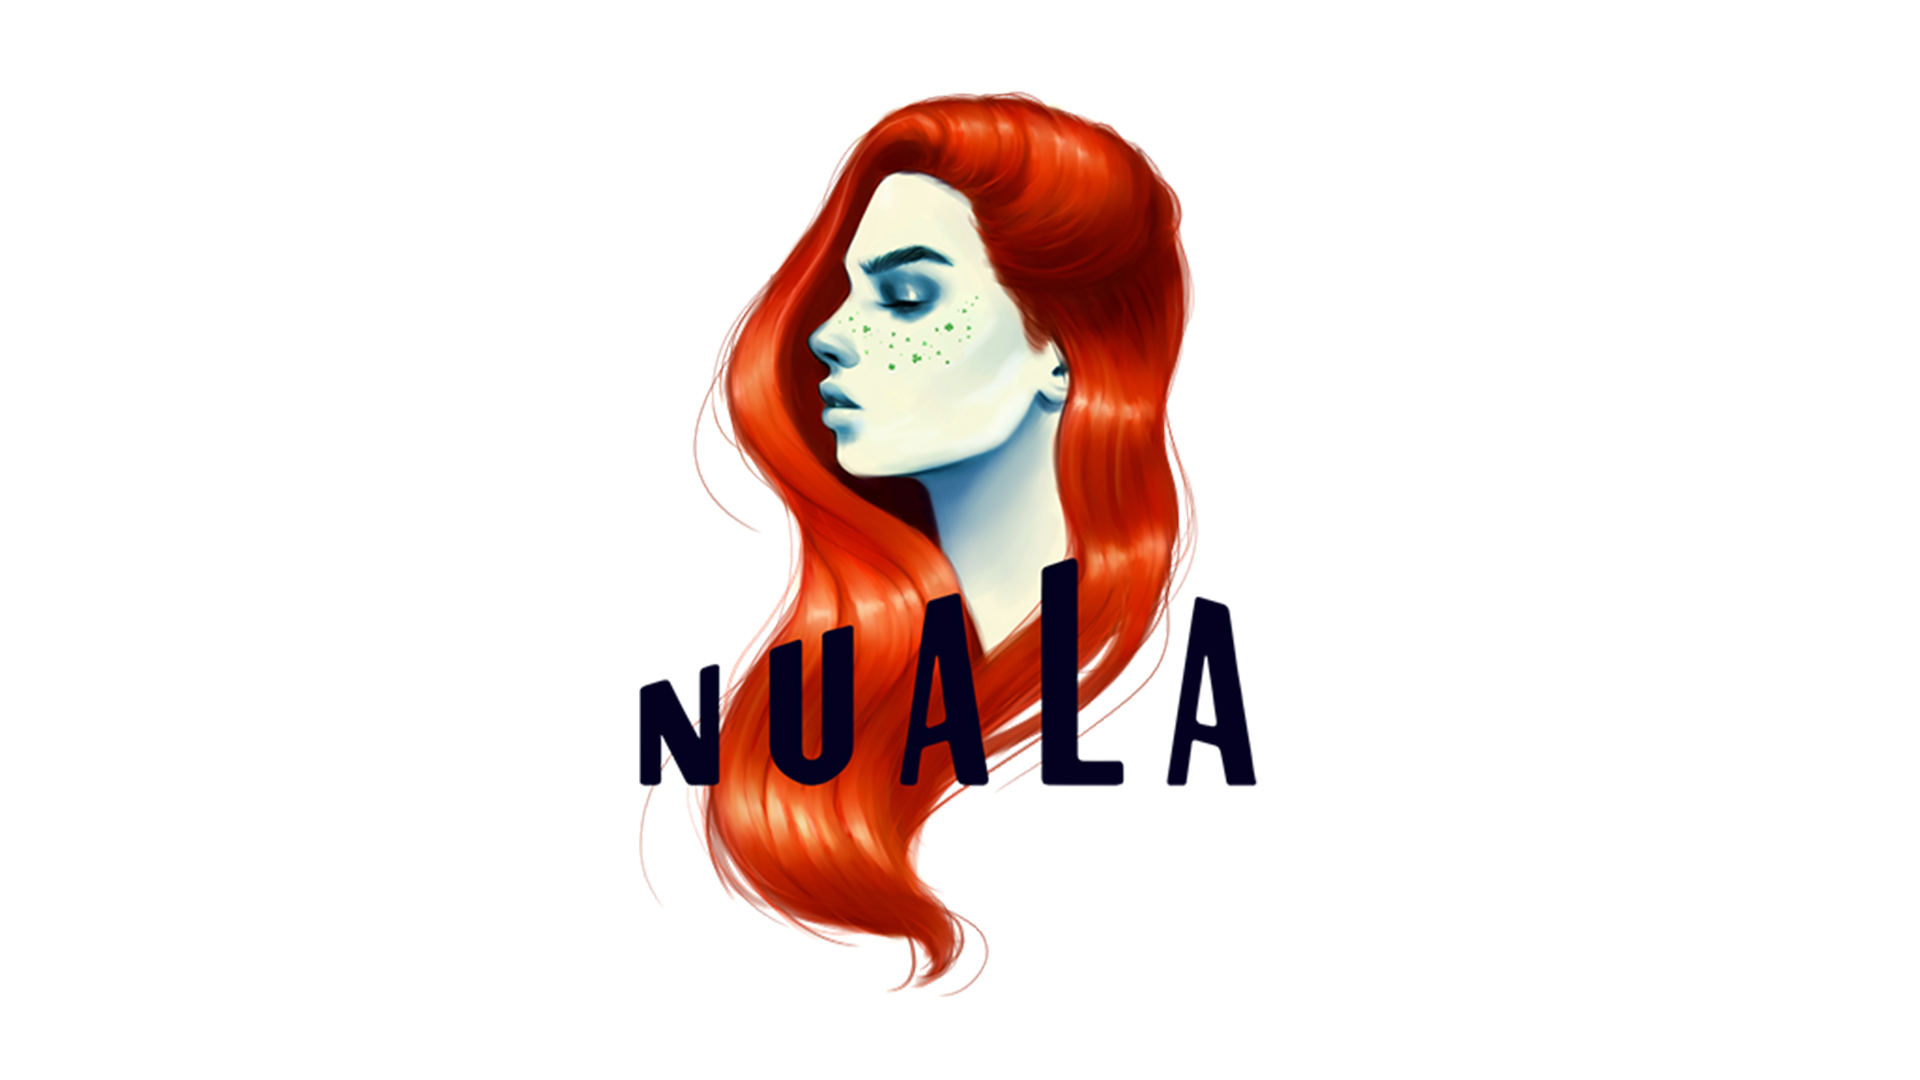 NUALA LONDON   We're sticking East for food, we need you to drink responsibly and thus ensure there is food in your stomach after those cocktails at the Horatio Street Social Club, so skip over to Old Street and take a seat at  Nuala  London. With this current Baltic weather, you'll be warmed to know there is an open fire pit for cooking in the middle of the restaurant which has been set up by Chef Niall Davidson of Chiltern Firehouse fame. This is his first restaurant and he's brought Colin Sherry, Charlie Sims, John O'Dowd and Honey Spencer with him. Which is the equivalent of having the culinary A-Team stood behind you, having notched up their years of experience at the likes of Noma, Fat Duck and Bistrotheque. The 75 seater all-day restaurant will serve up fire cooked beef and fish deliciousness, bar snacks and many a Celtic inspired dish thanks to Davidson's Irish and Scottish heritage. We've heard the hospitality is second to none and we can't think of anything more pleasant than kicking back around the fire pit and tucking into some top quality grub.  Facebook  |  Instagram